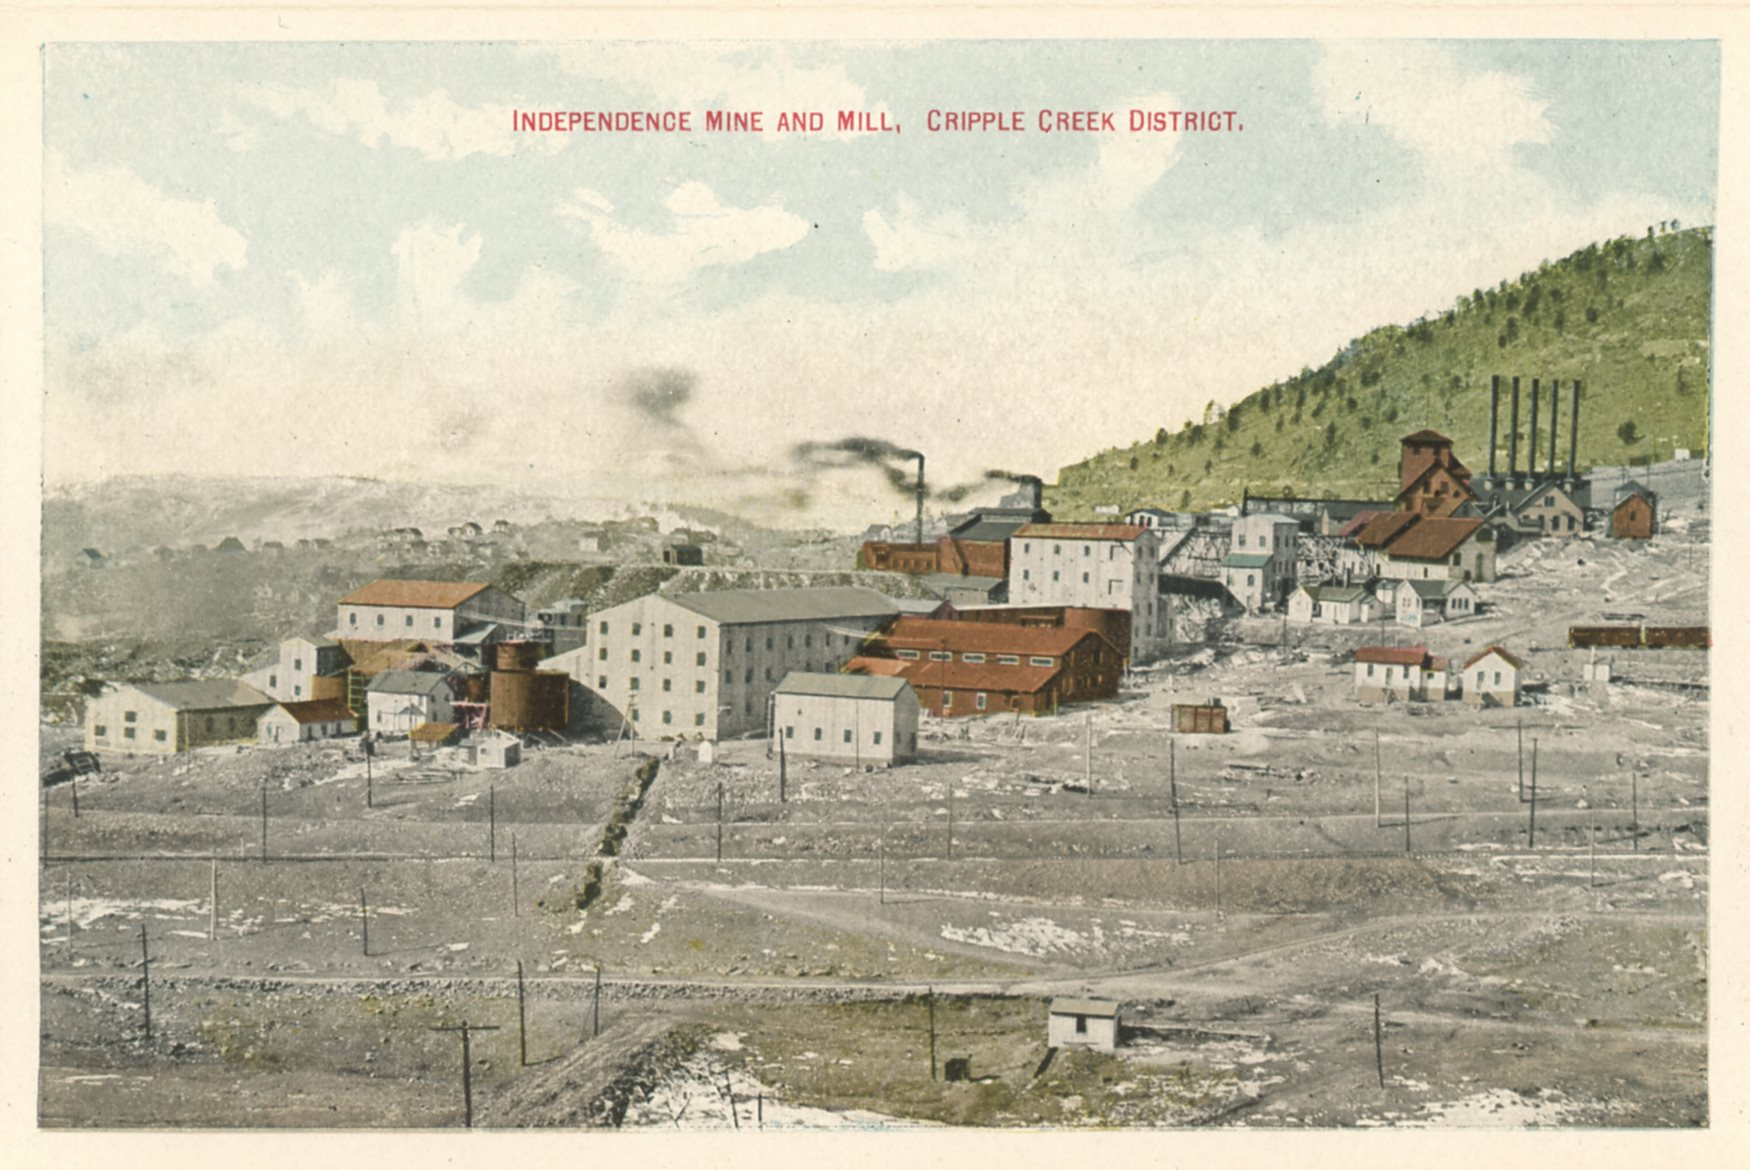 Independence Mine and Mill, Cripple Creek District.